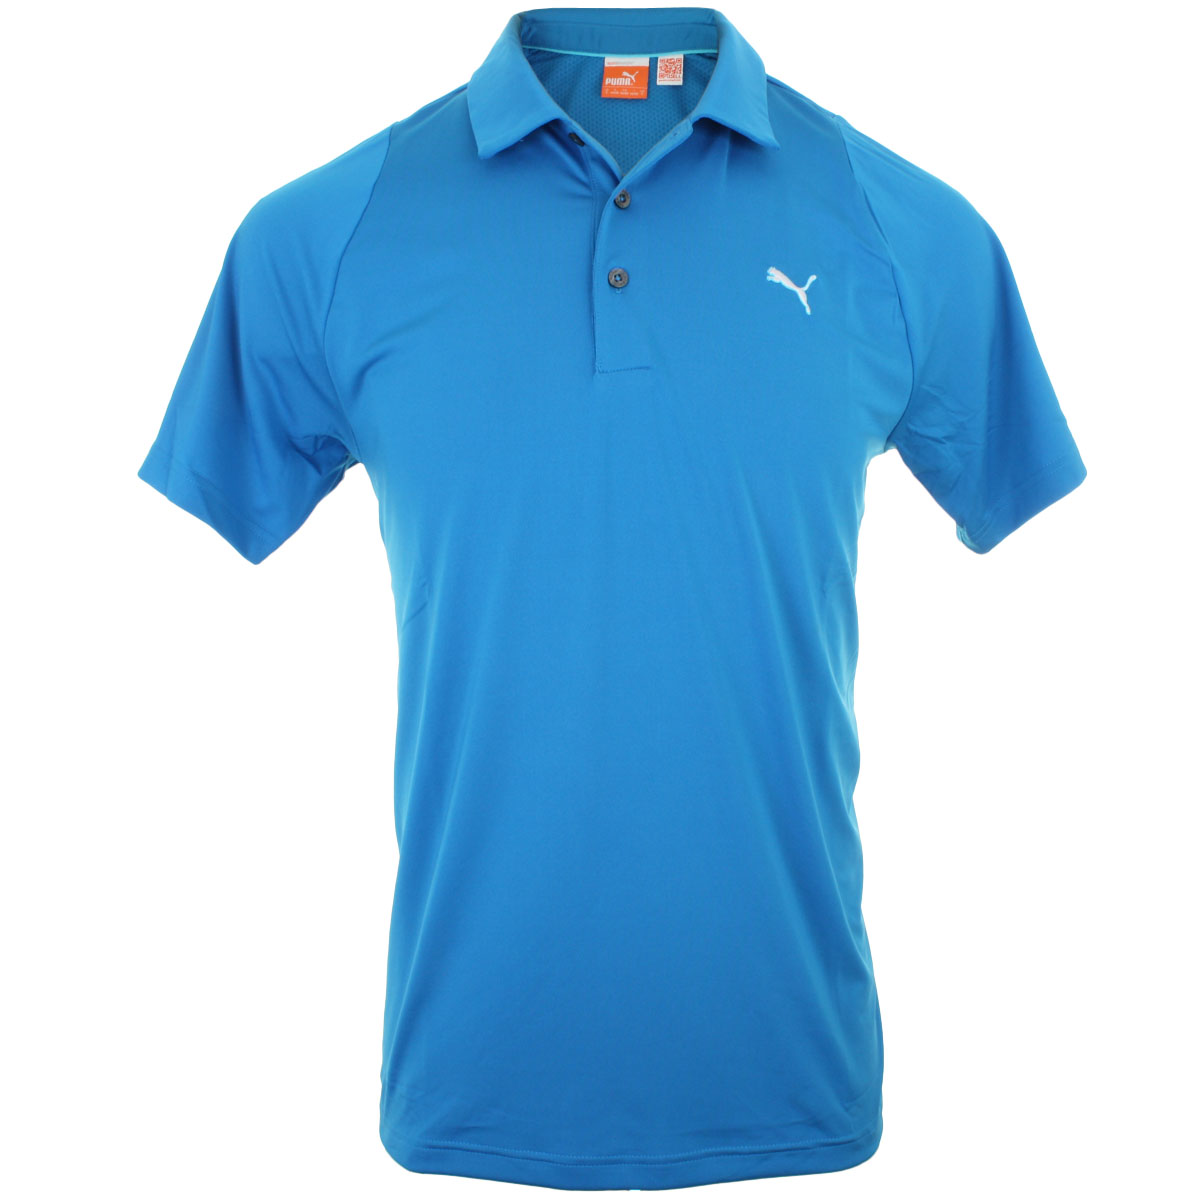 Puma golf mens duo swing golf polo shirt tech performance for Mens puma golf shirts